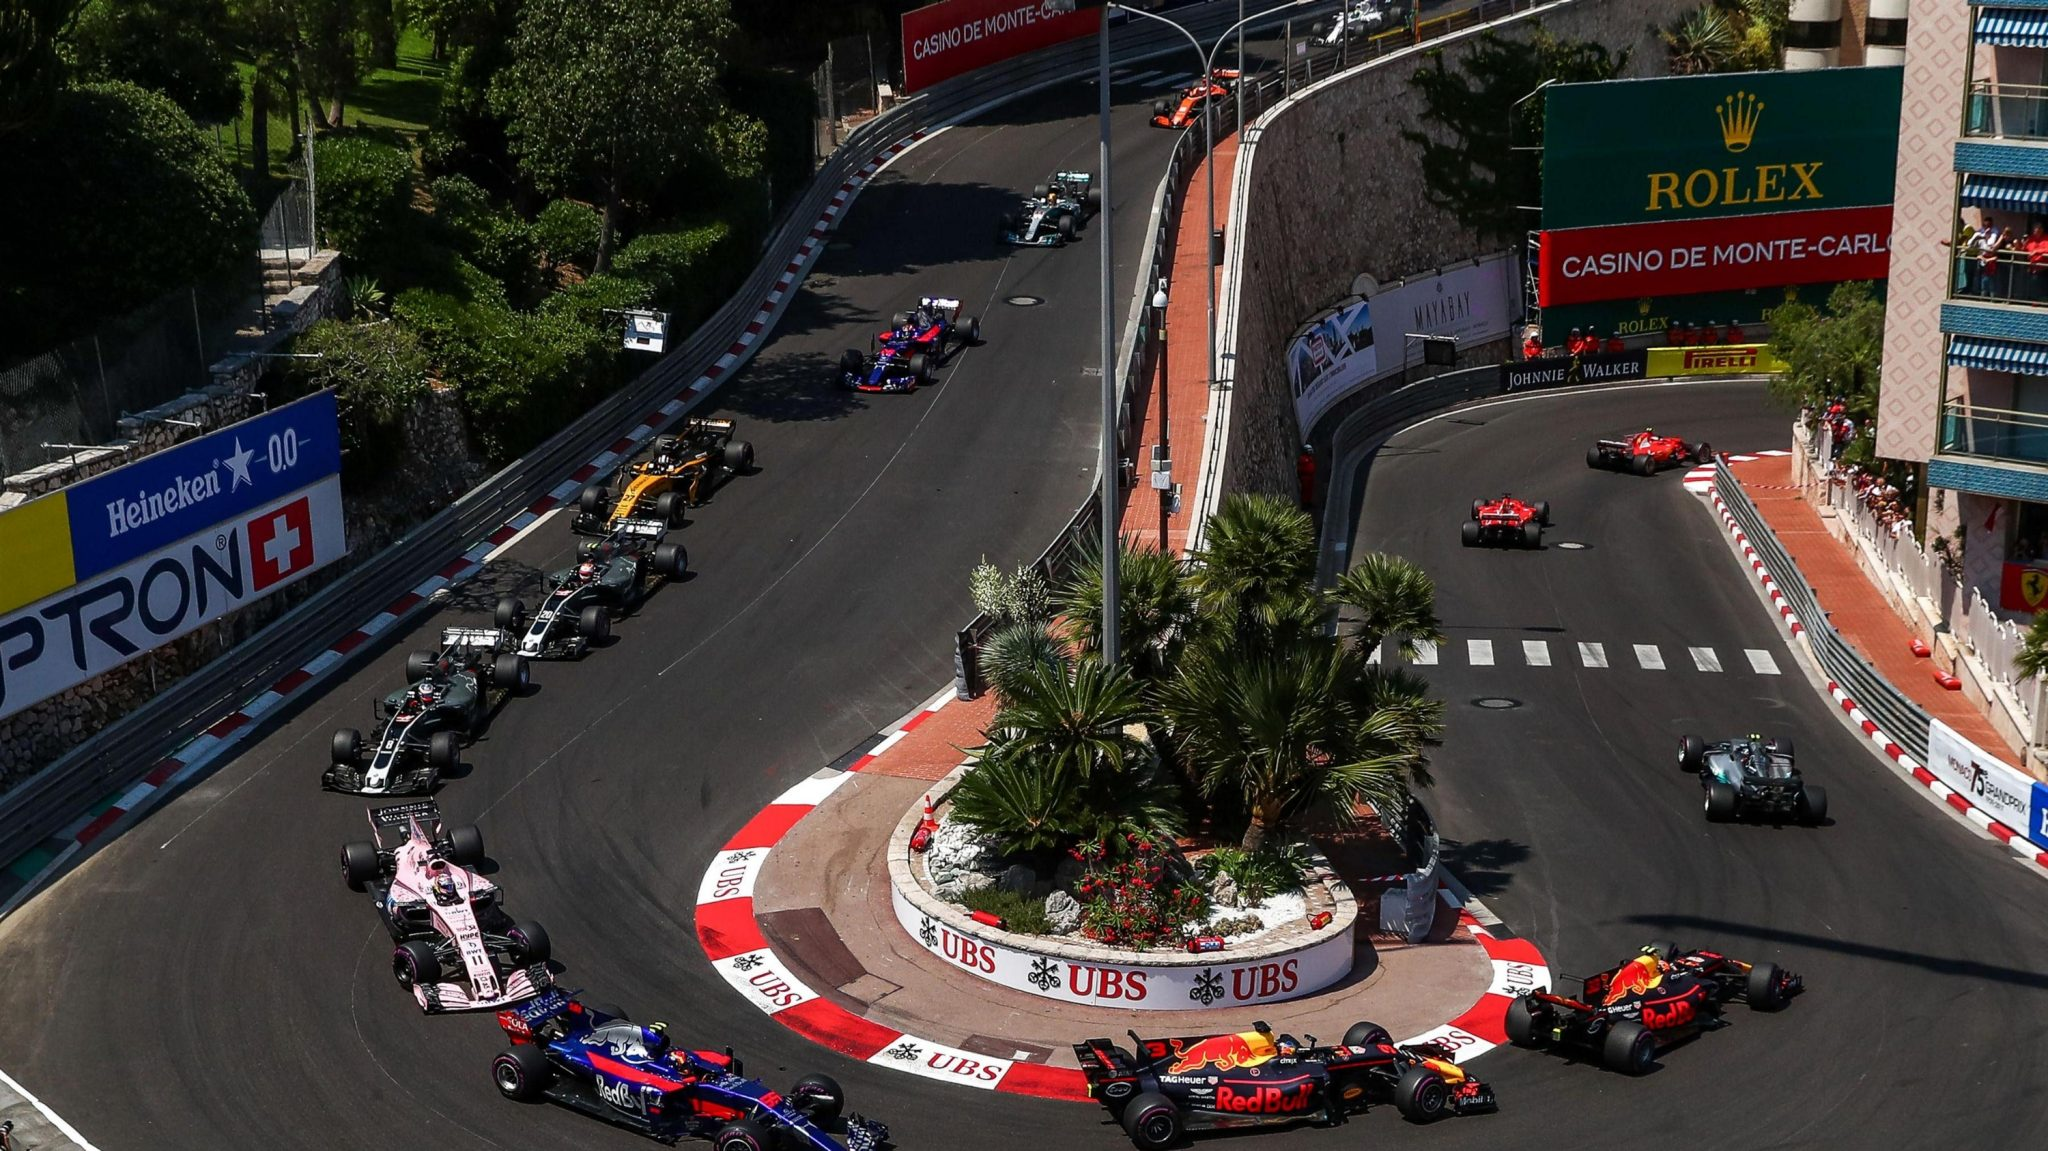 F1 on the streets of Monaco